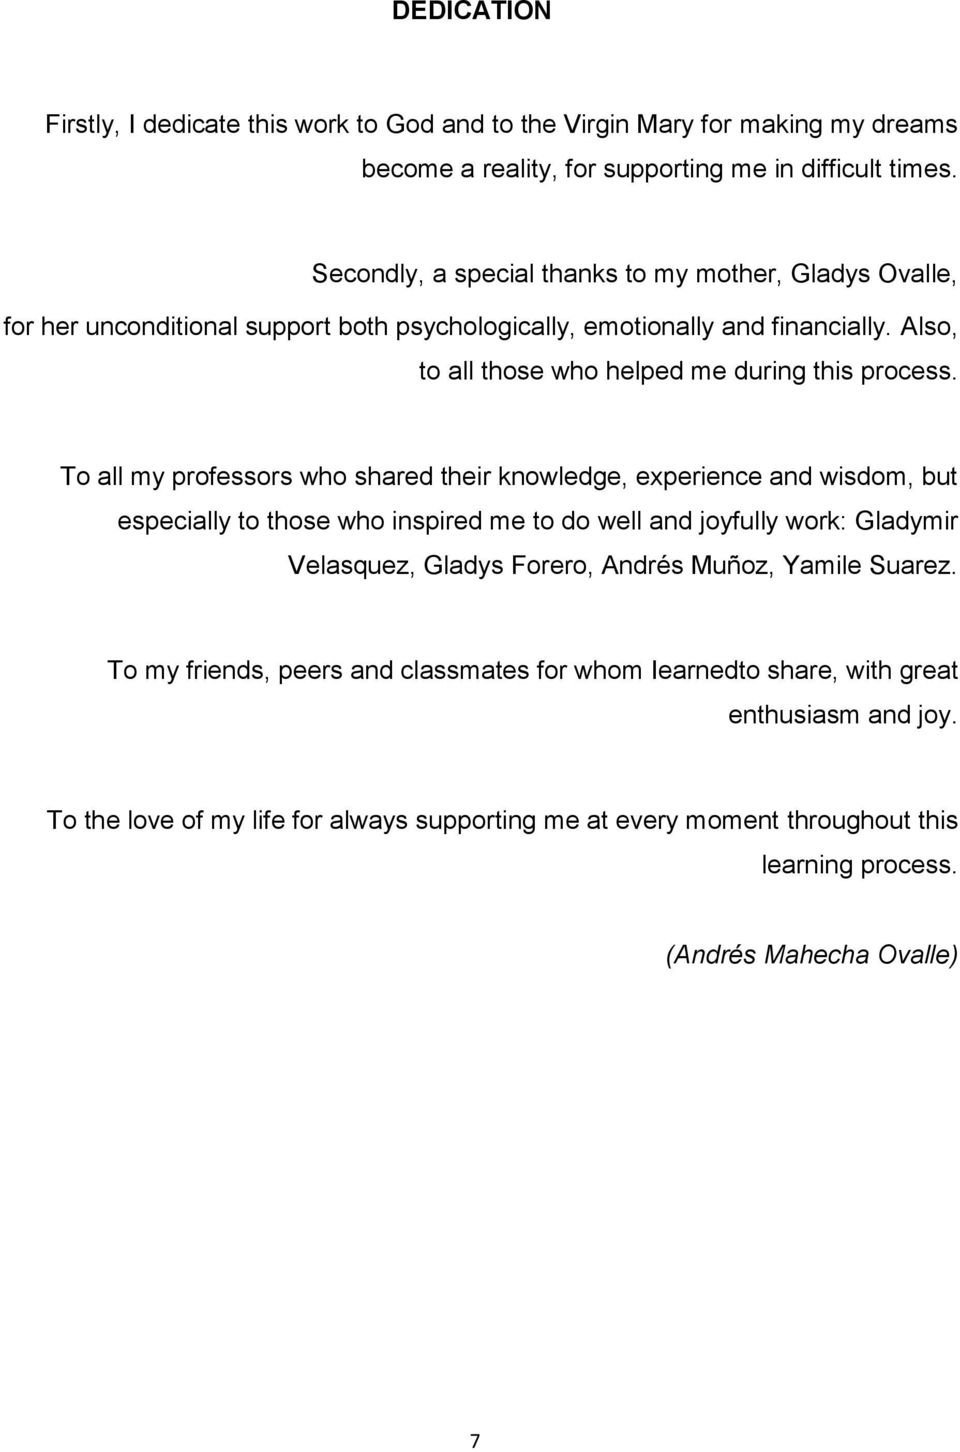 To all my professors who shared their knowledge, experience and wisdom, but especially to those who inspired me to do well and joyfully work: Gladymir Velasquez, Gladys Forero, Andrés Muñoz,